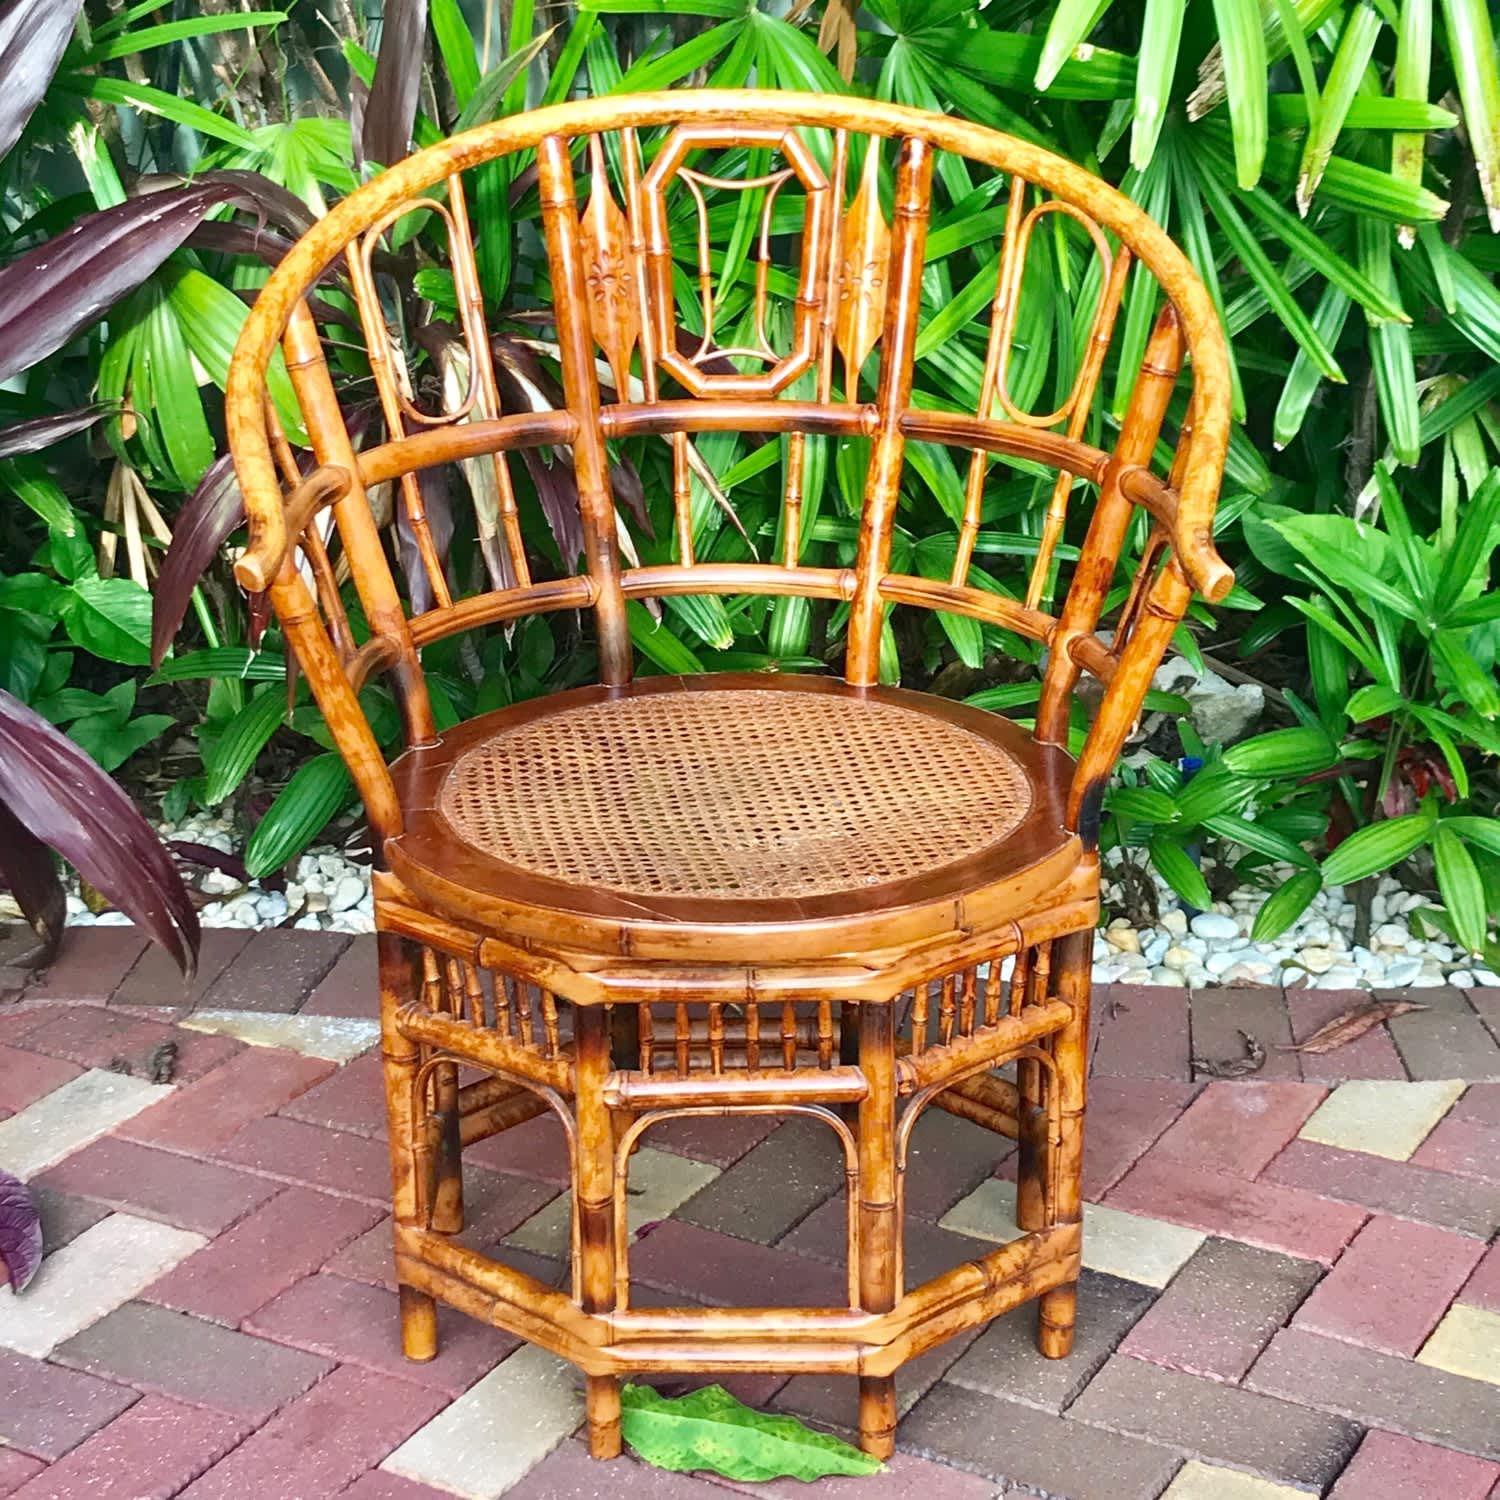 7 Faux Bamboo Pieces for Sale on Bazaar